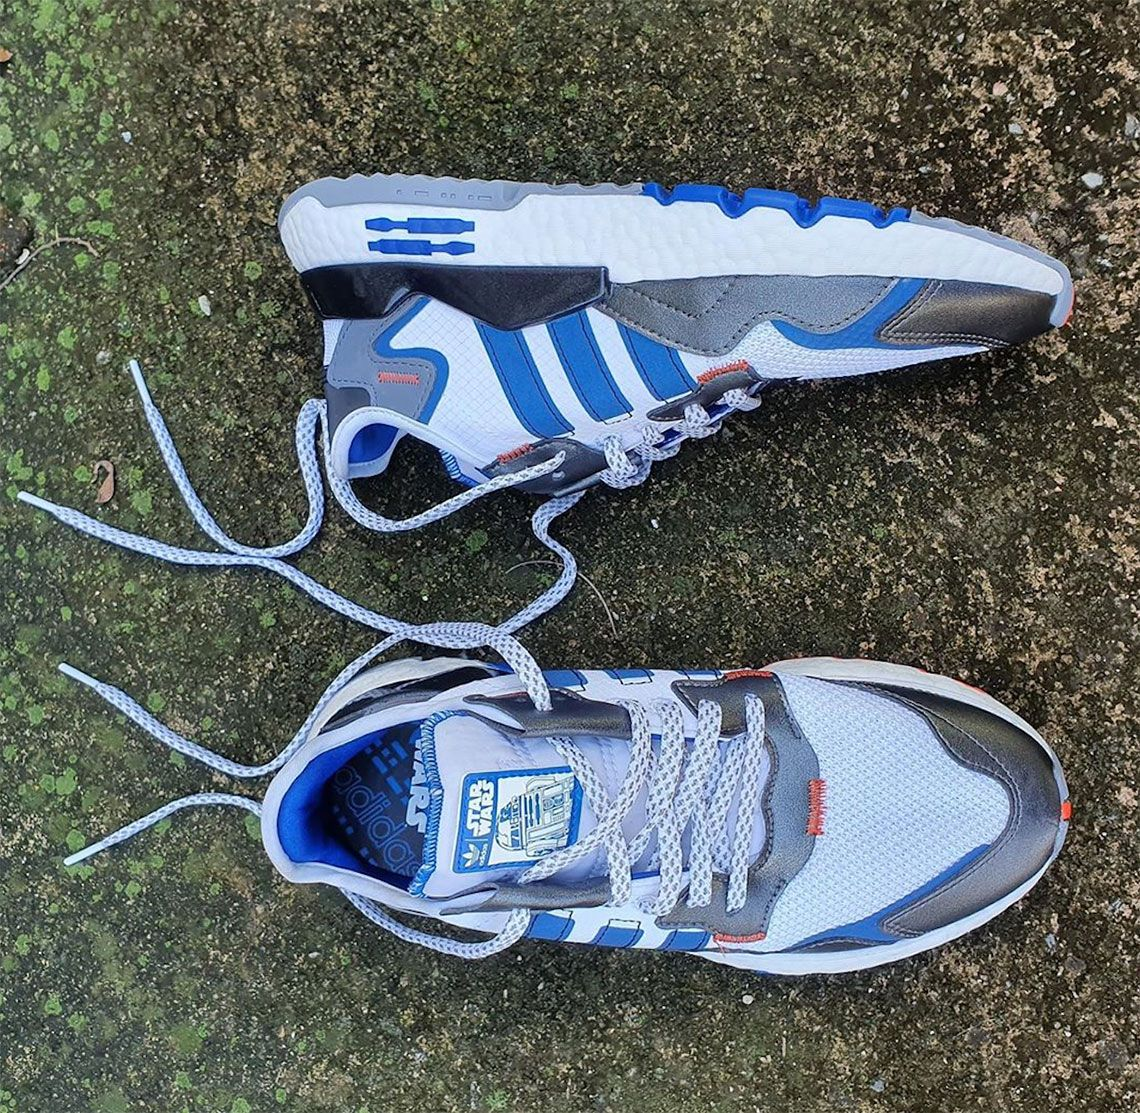 Star Wars adidas Nite Jogger R2D2 Release Info | Joggers